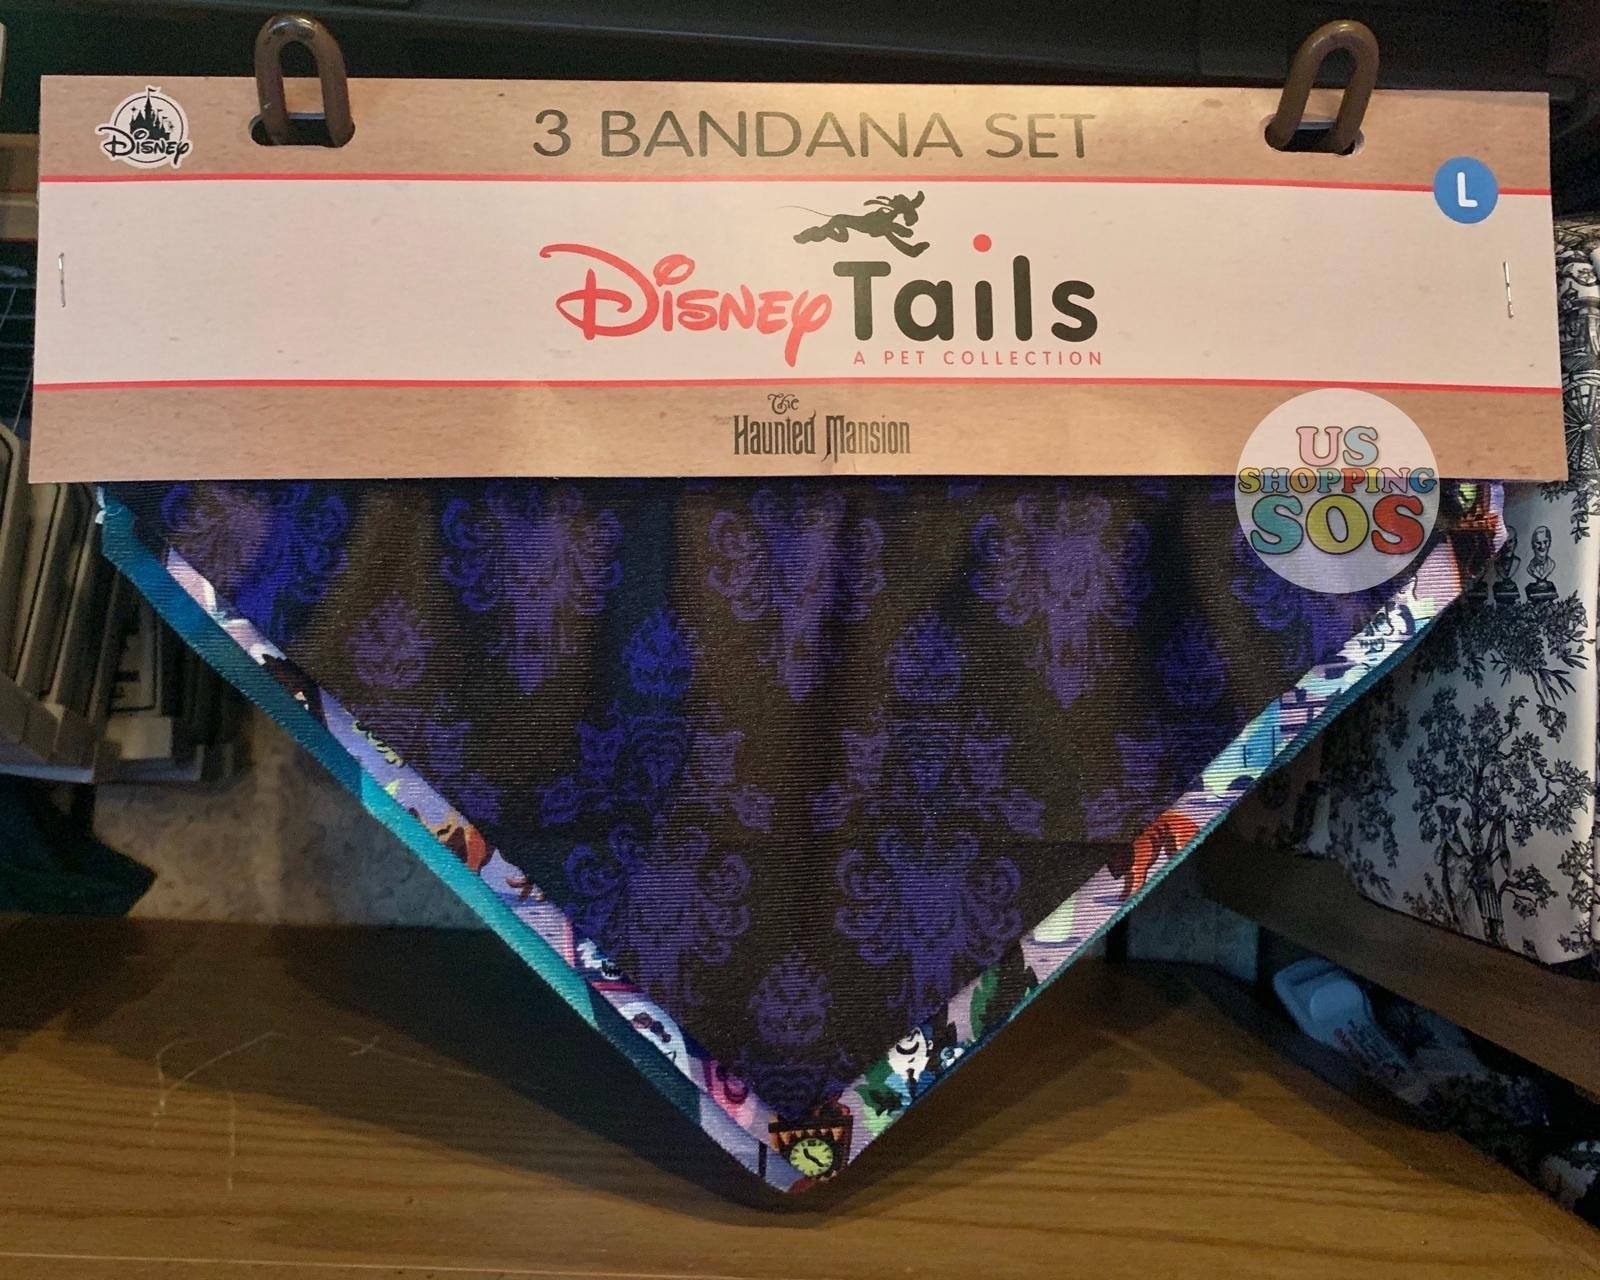 DLR - Disney Tails Dog Bandana Set - Haunted Mansion